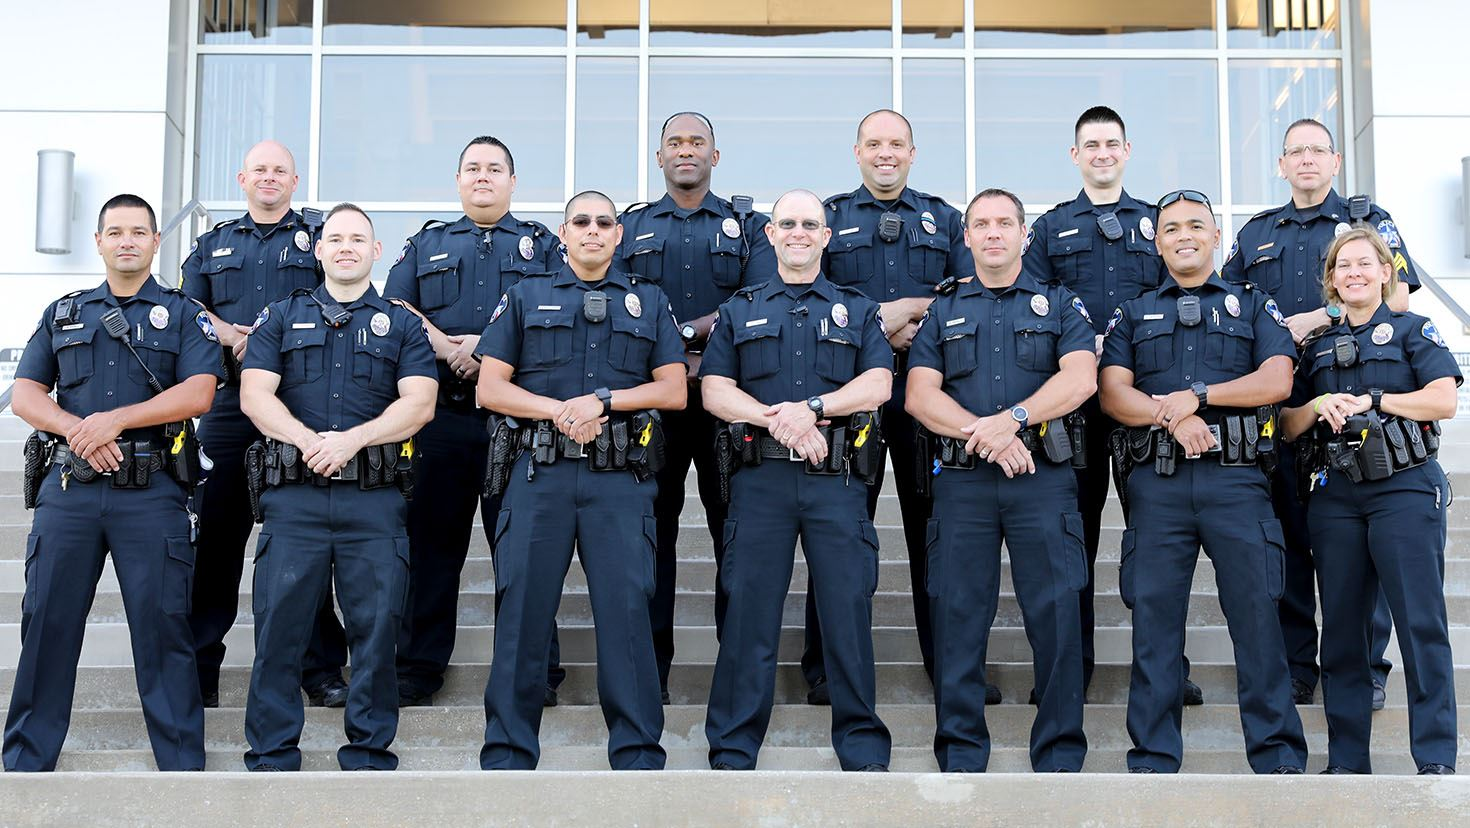 APD School Resource Officer Unit pictured as a group